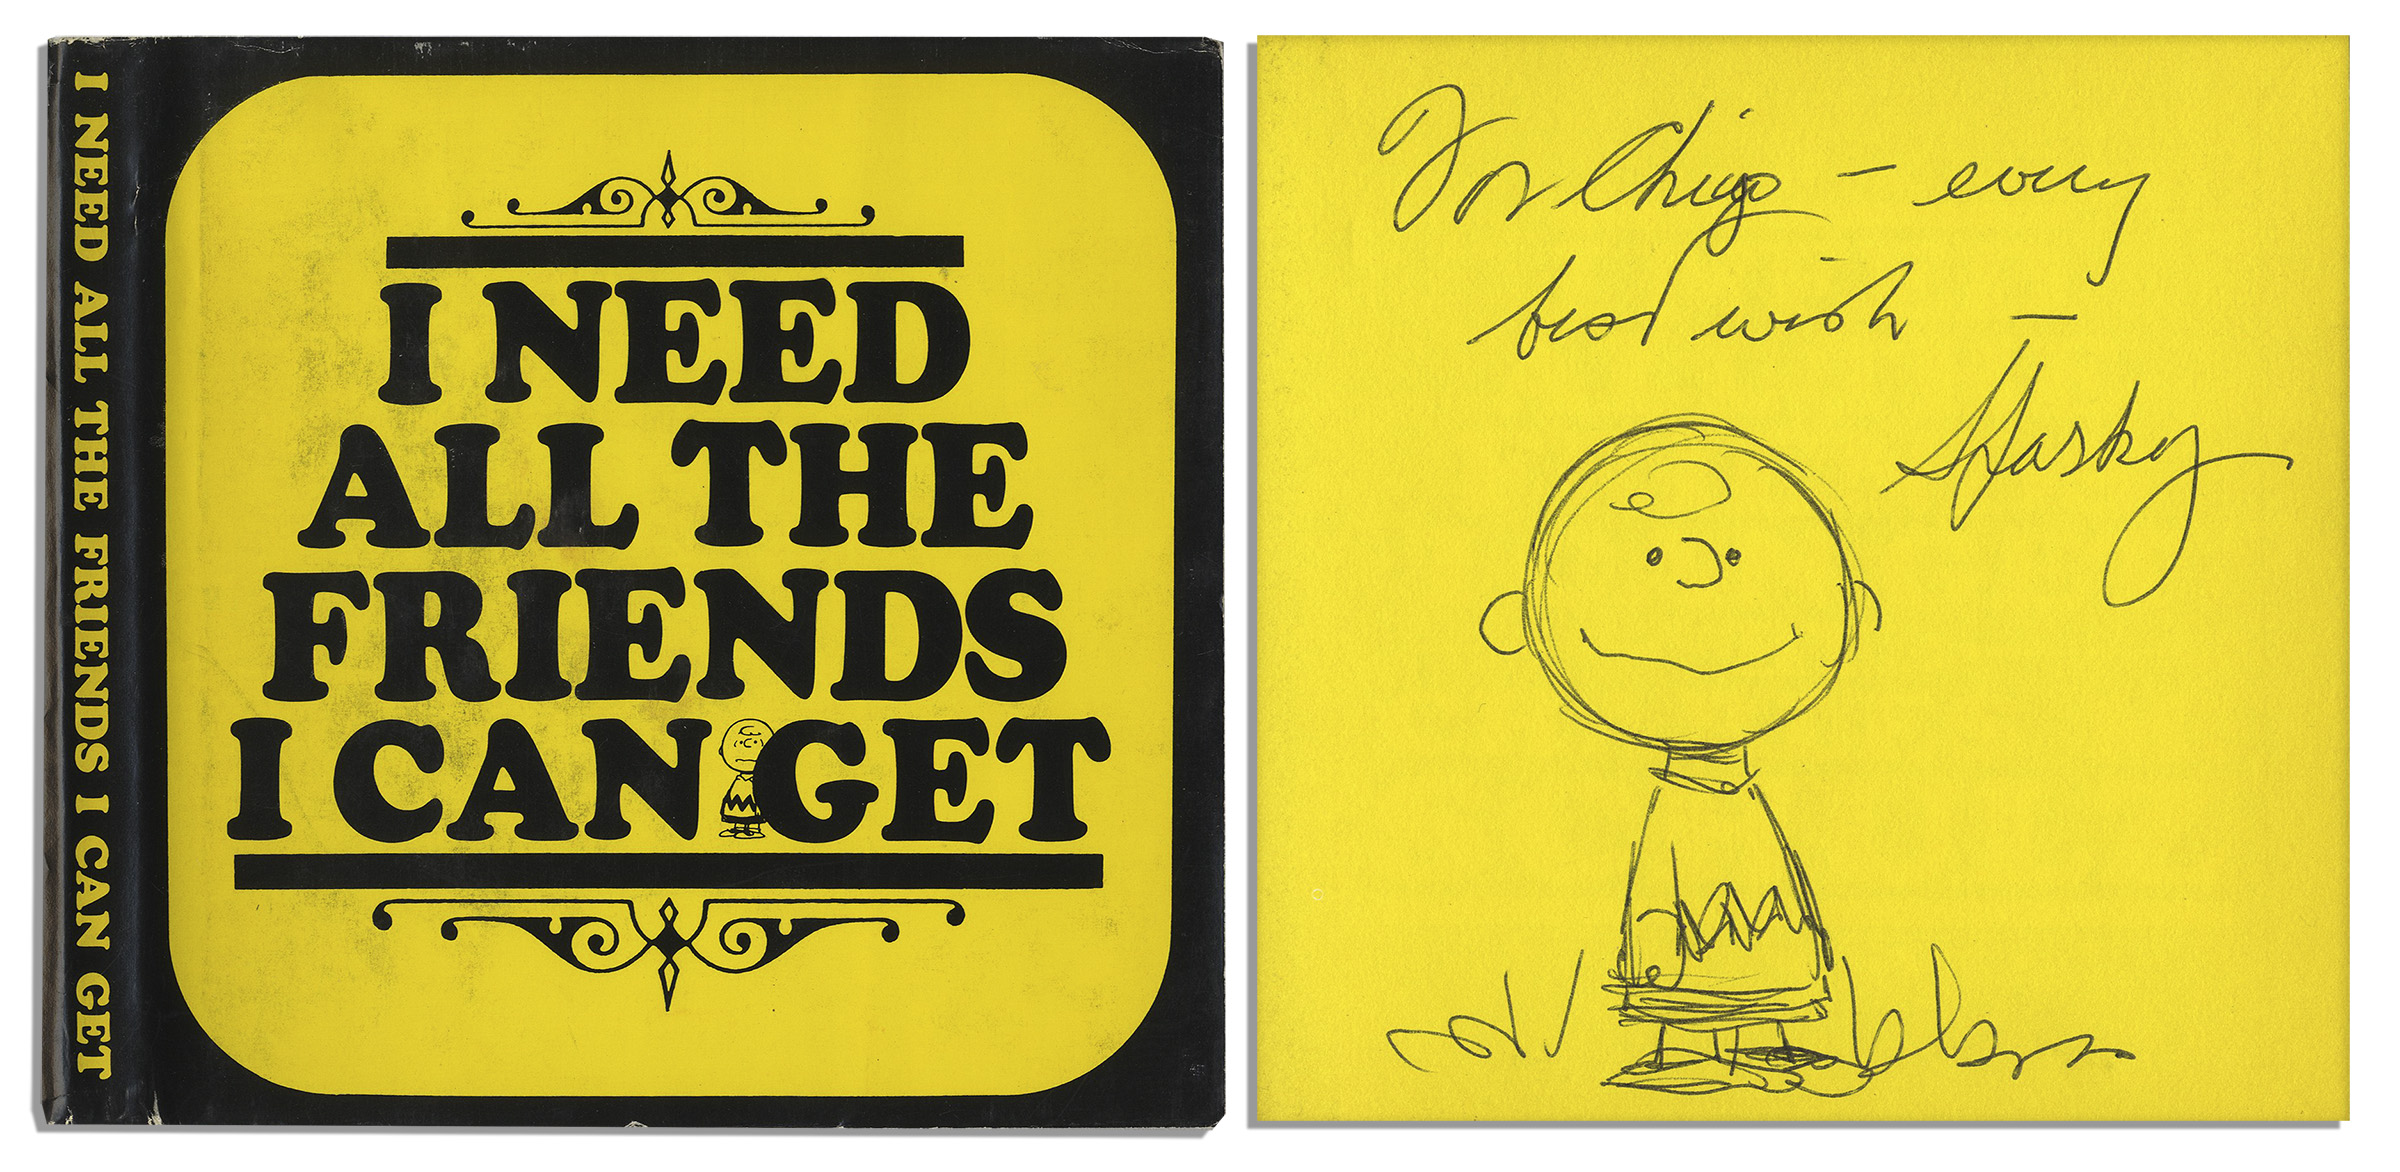 Charles Schulz Snoopy sketch signed item